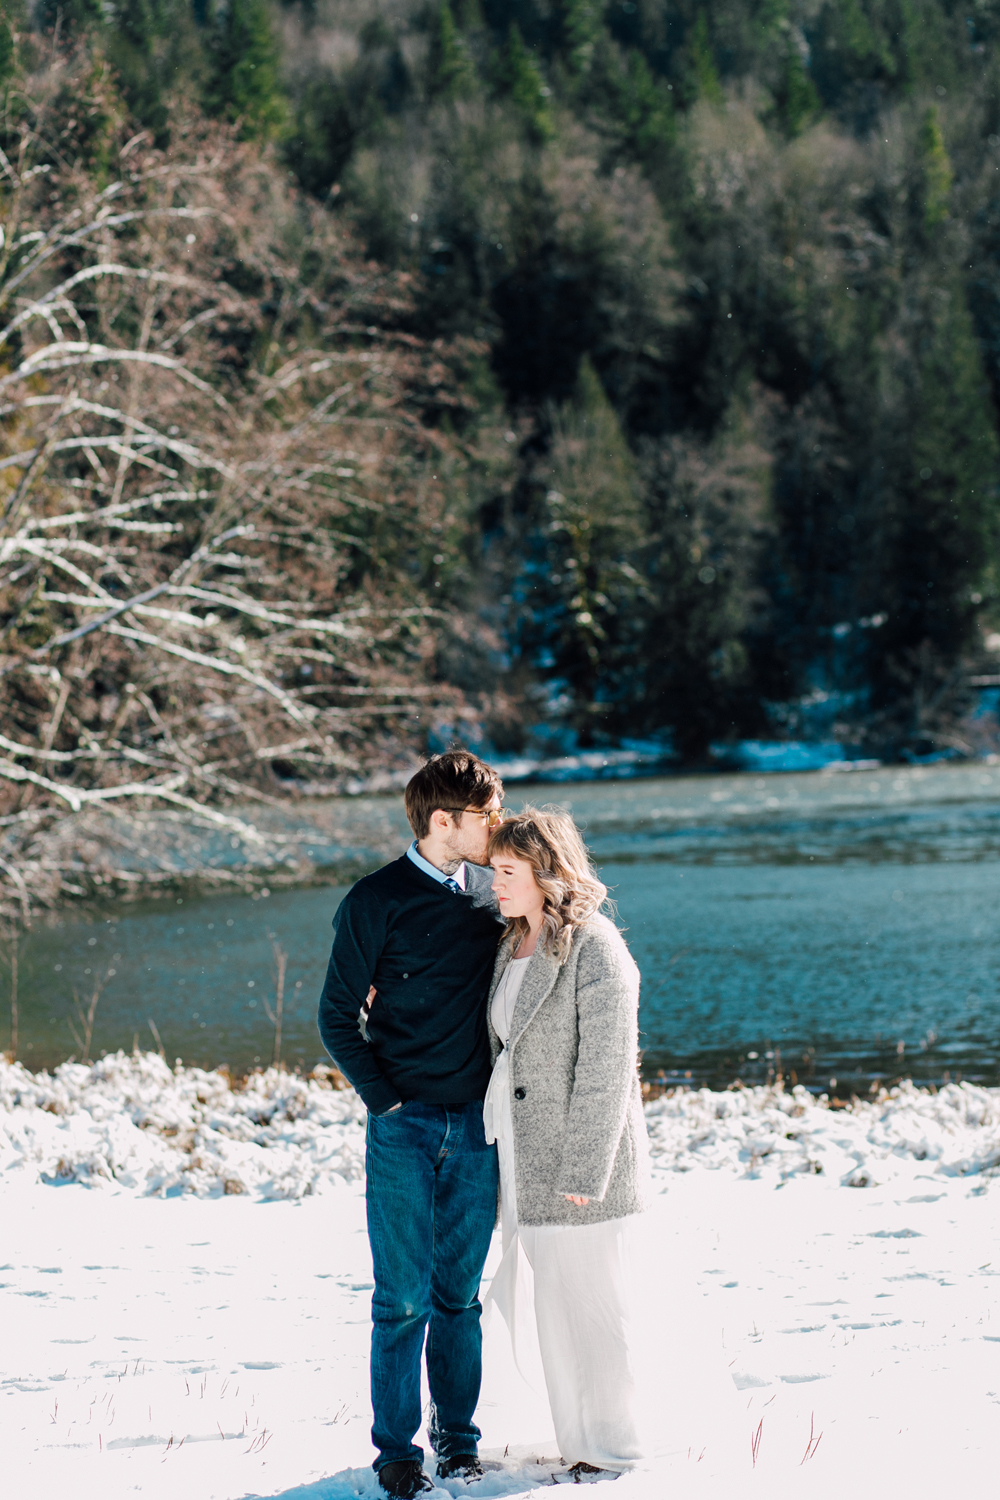 026-bellingham-engagement-photographer-silver-lake-bre-mitch-2018.jpg